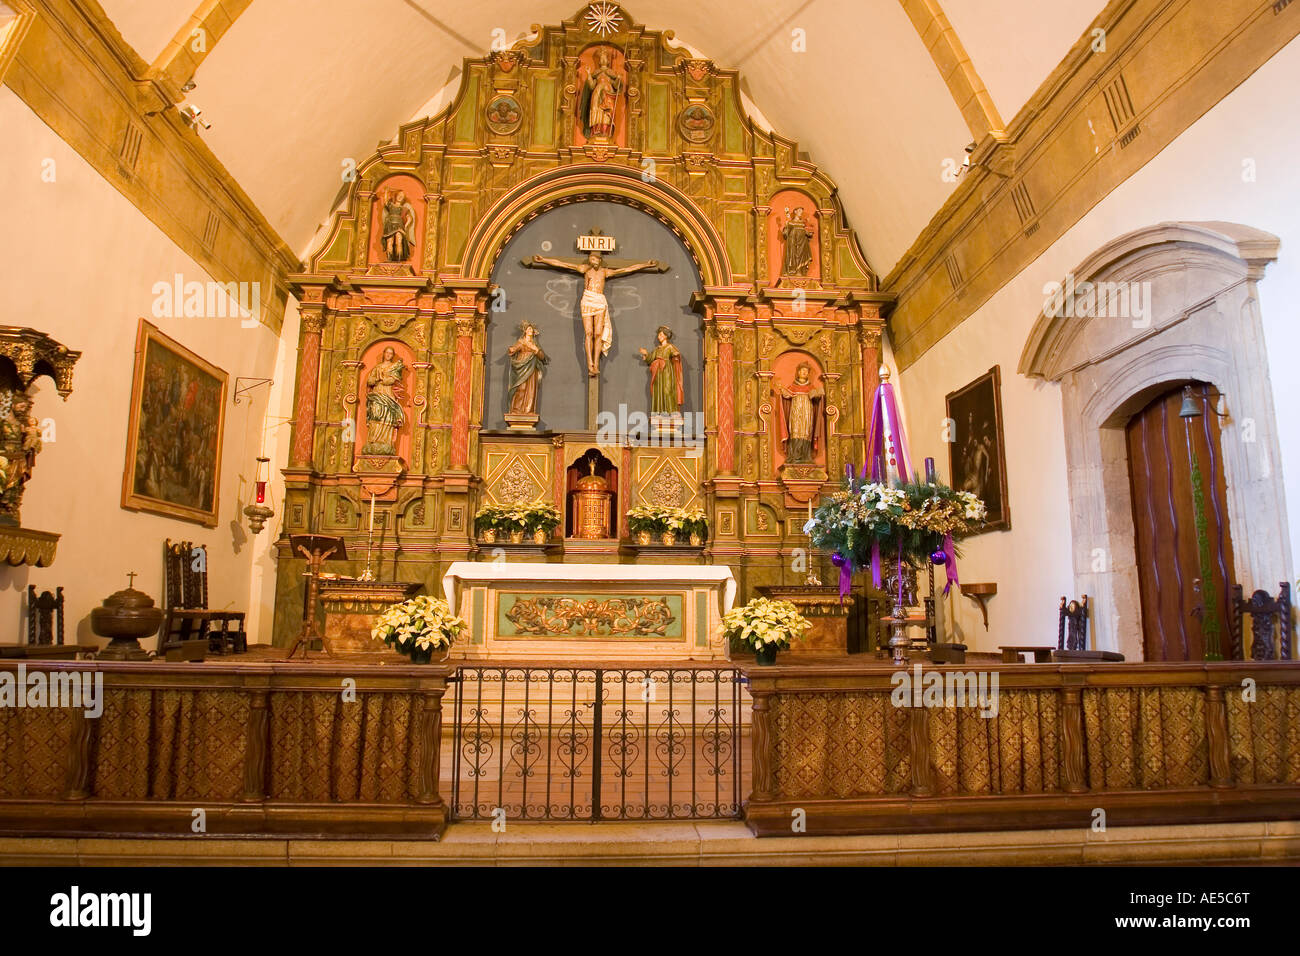 Front chancel and altar of the Carmel Mission church with railing in Carmel Mission Basilica church - Stock Image